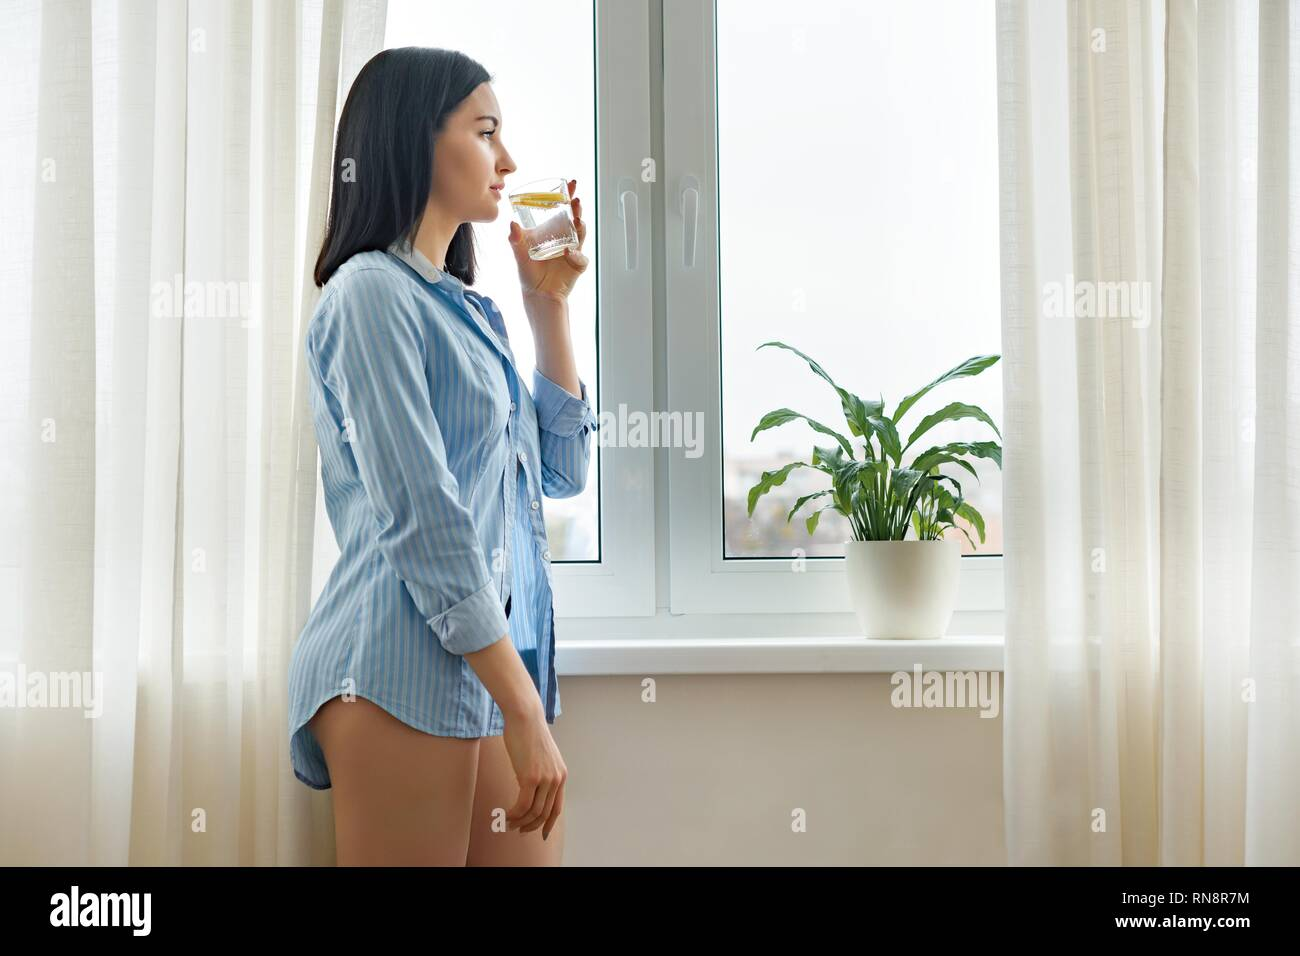 Healthy lifestyle, diet, antioxidant. Morning glass of water with lemon in the hands of young woman - Stock Image